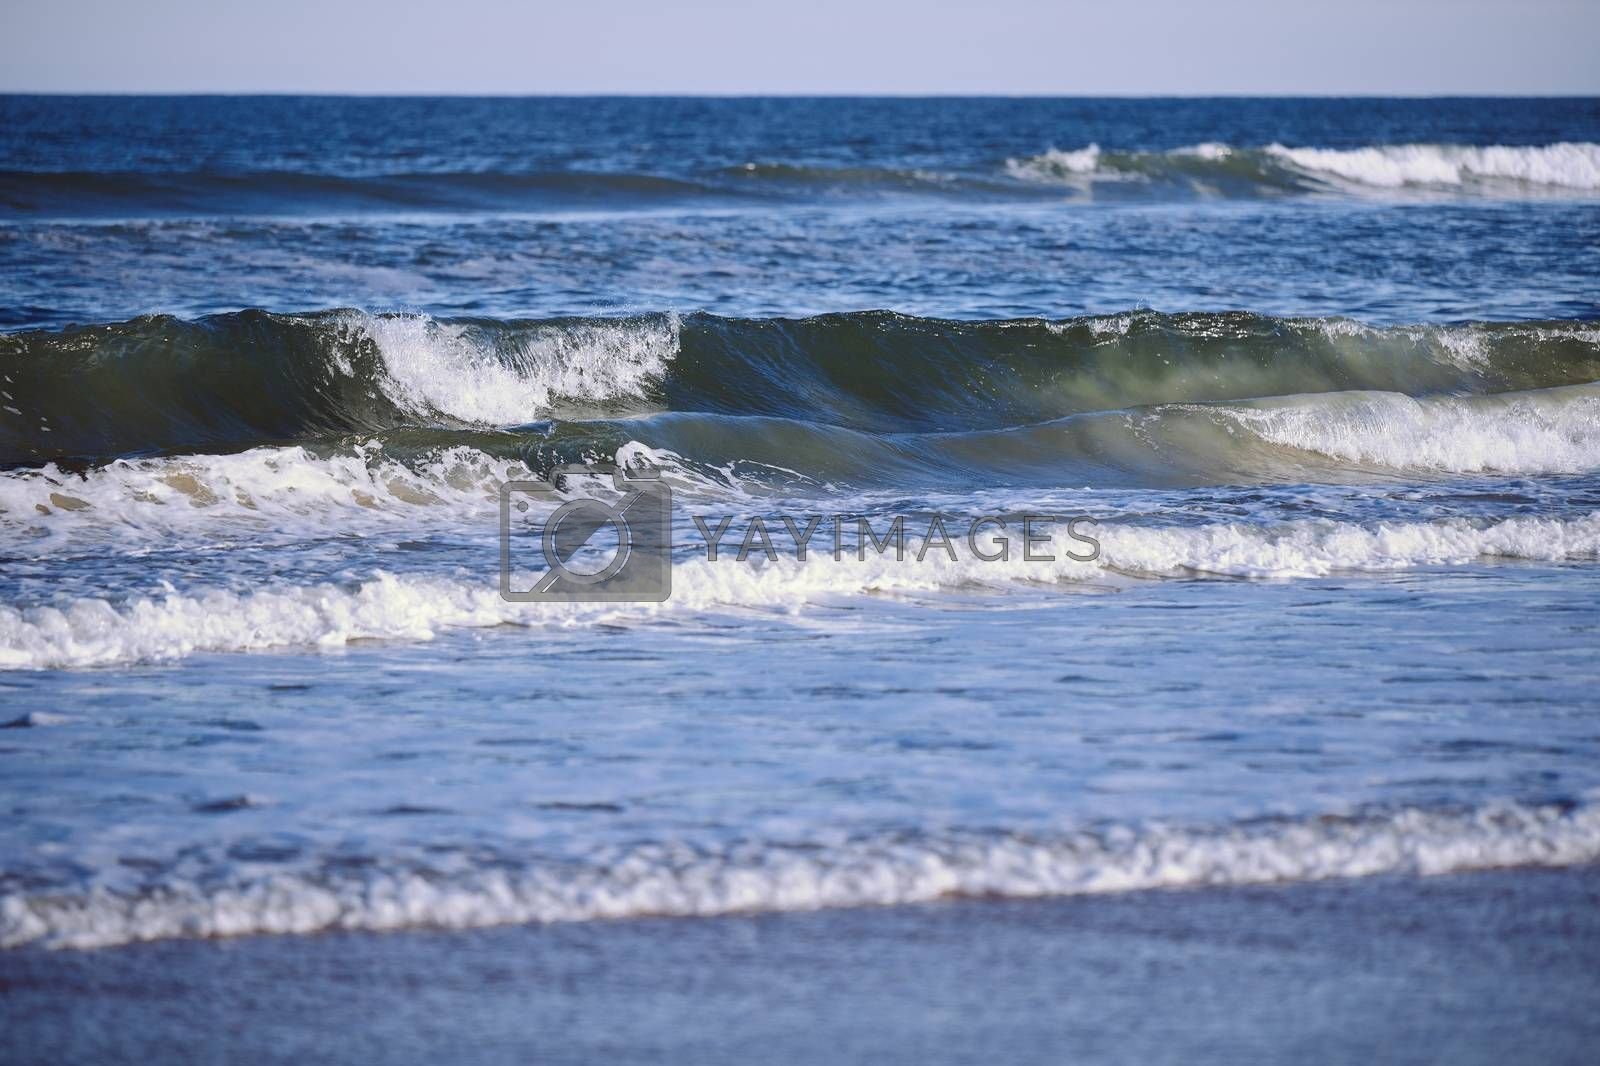 Rough water and waves in Atlantic Ocean. Florida, USA by Novic